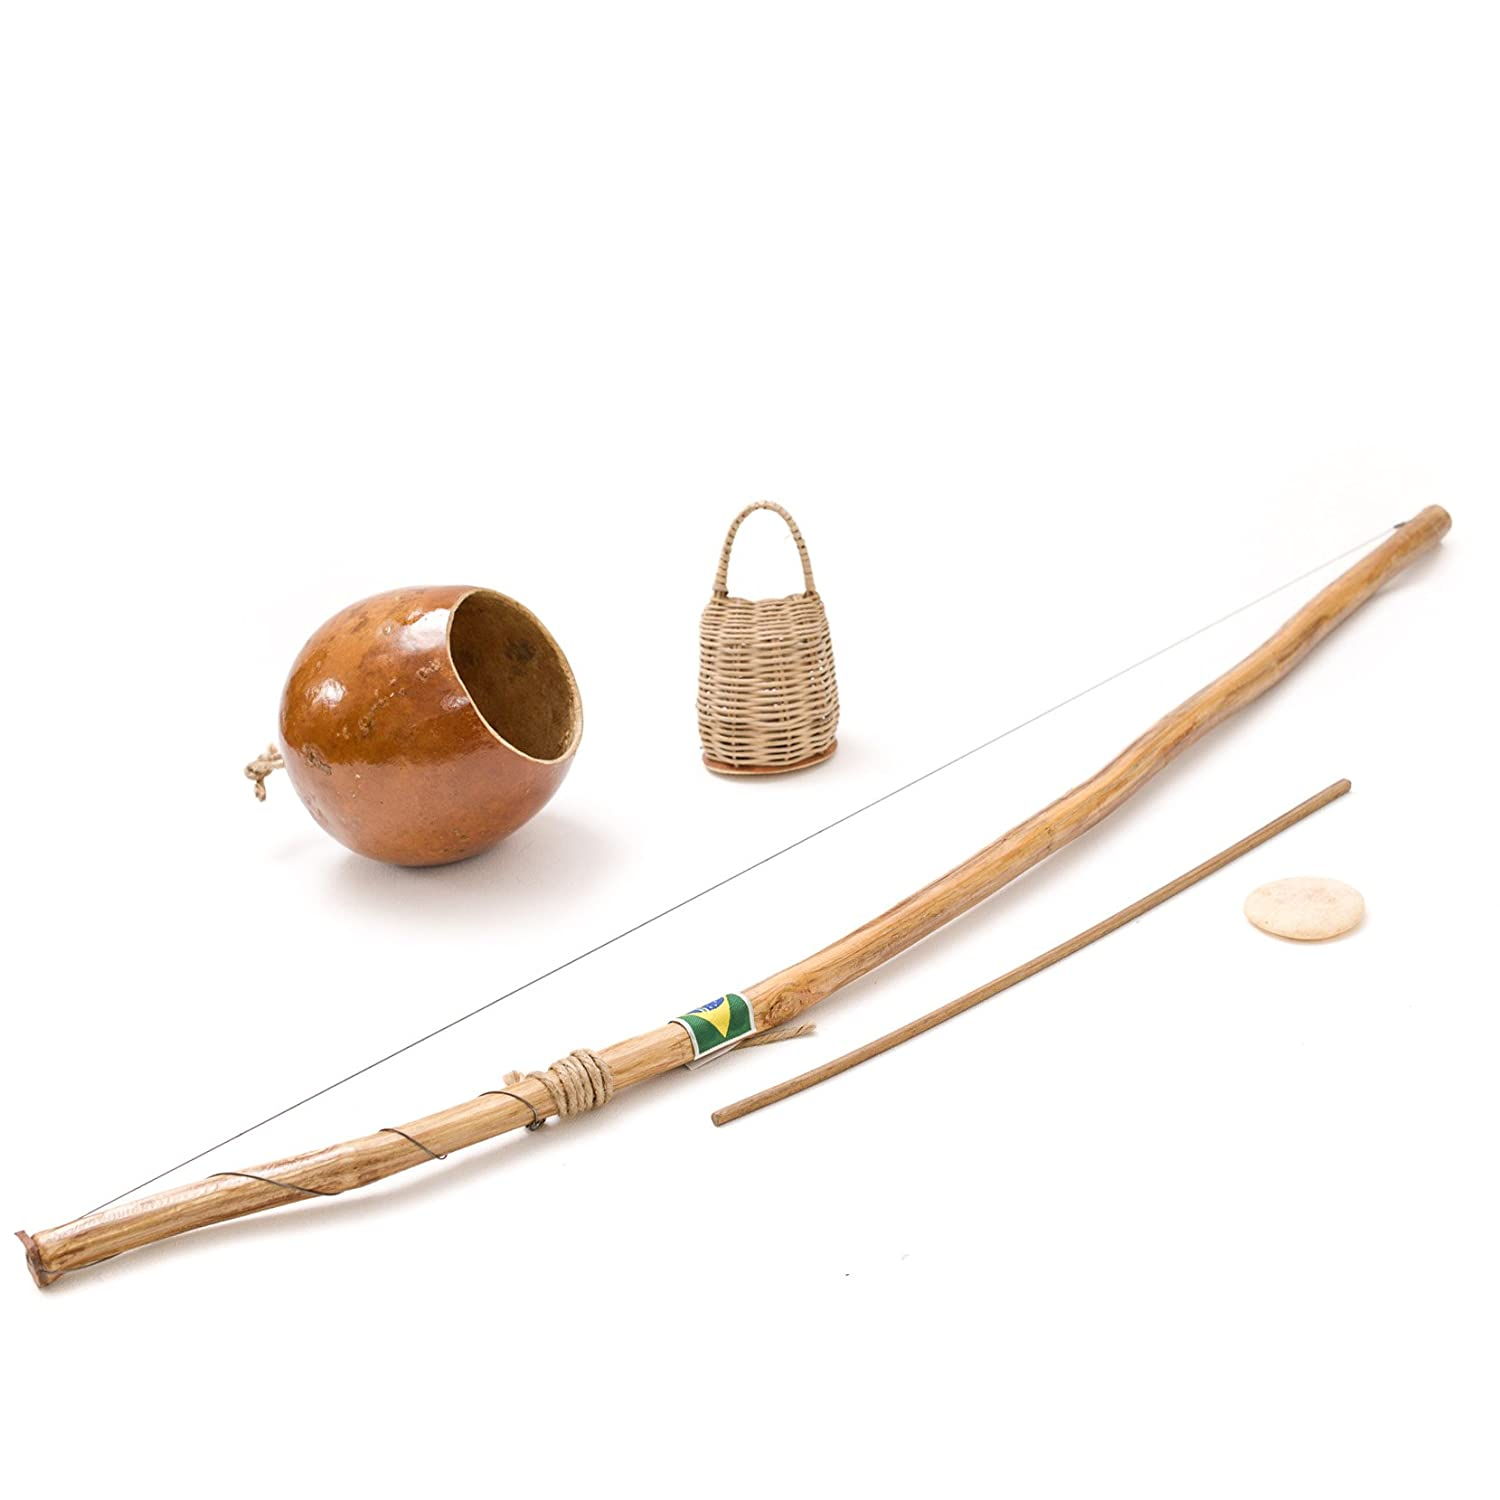 165 cm Full Size Brazilian African Berimbau String Bow Capoeira Music Instrument Wood Handmade - Set